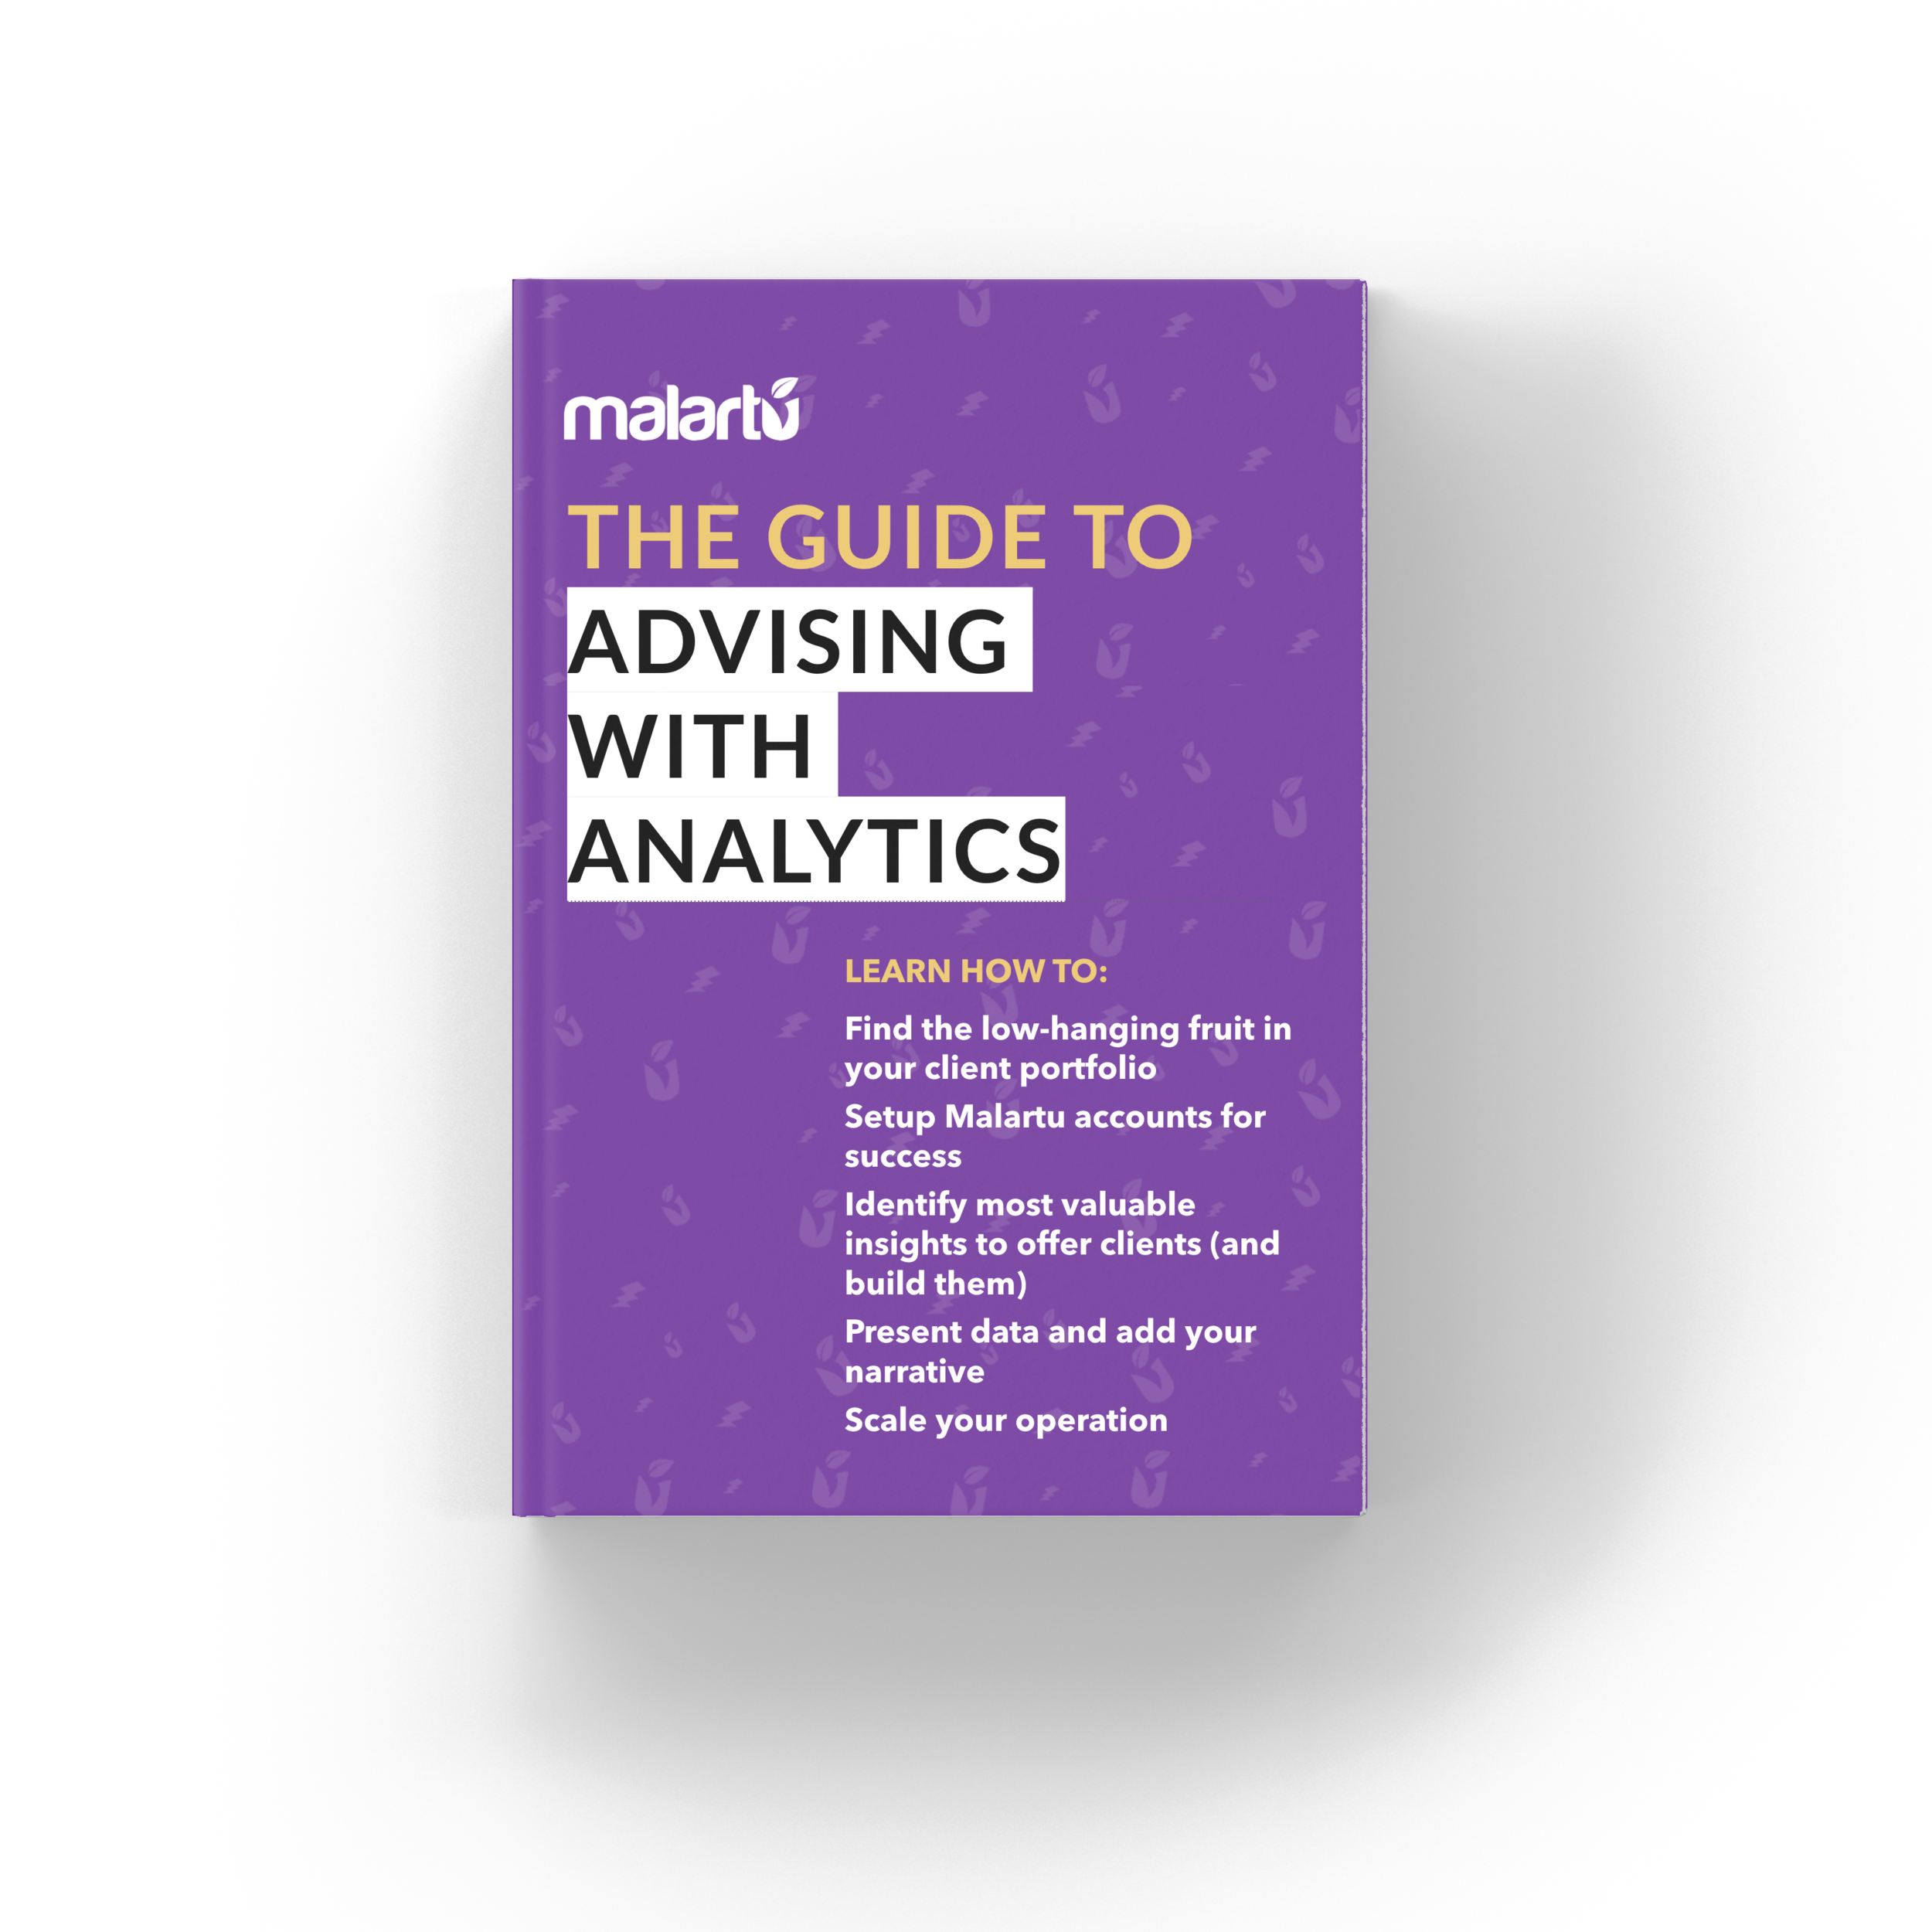 Guide to advising with analytics cover.png